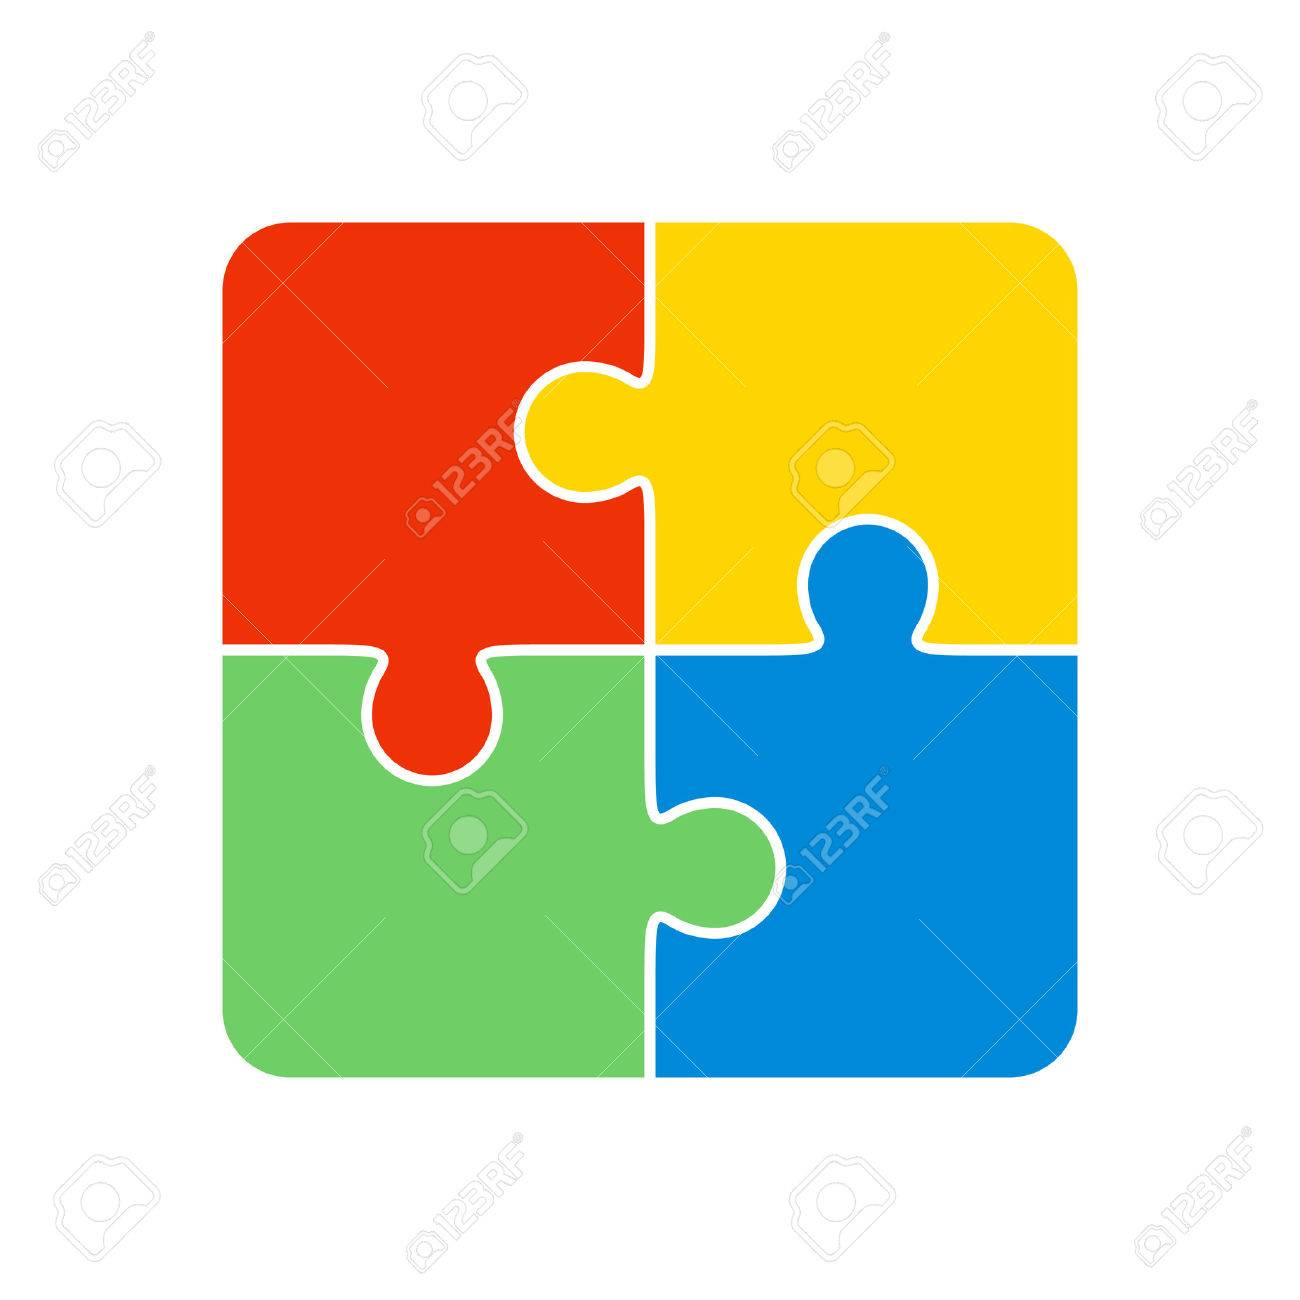 Colorful Jigsaw Puzzle Vector Four Pieces Isolated Stock